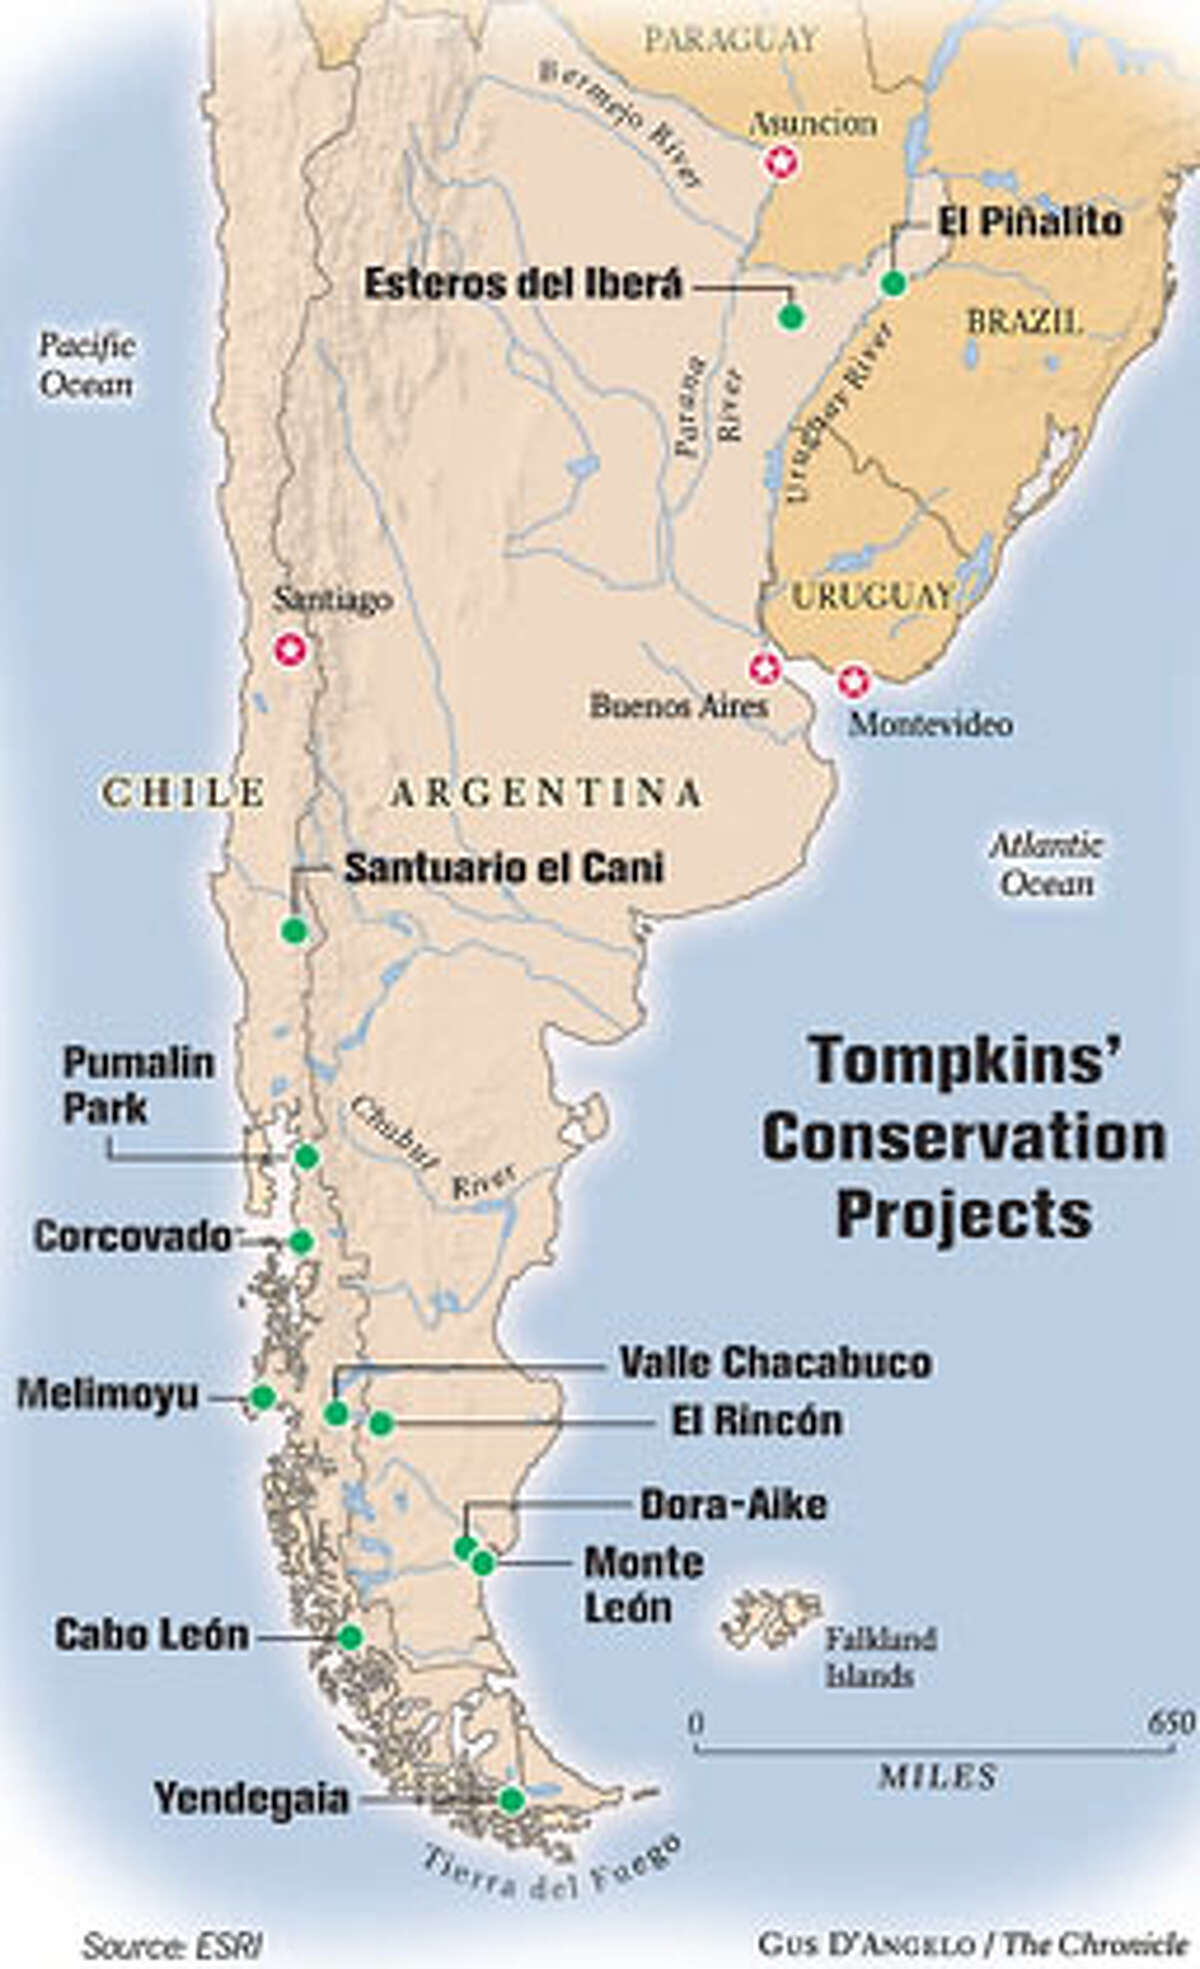 Tompkins' Conservation Projects. Chronicle graphic by Gus D'Angelo